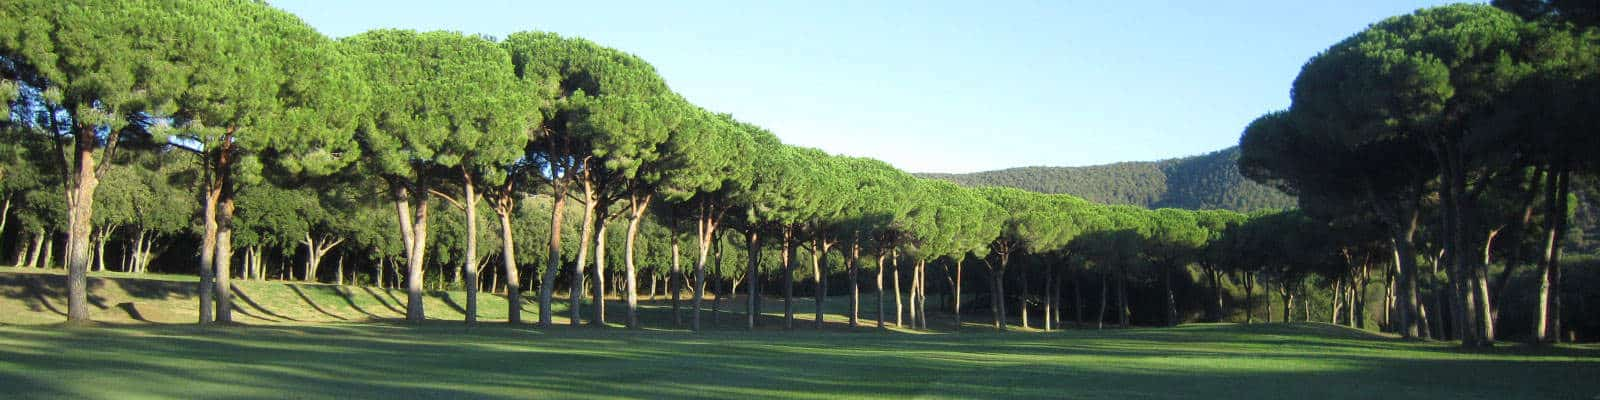 Corporate golf in Tuscany